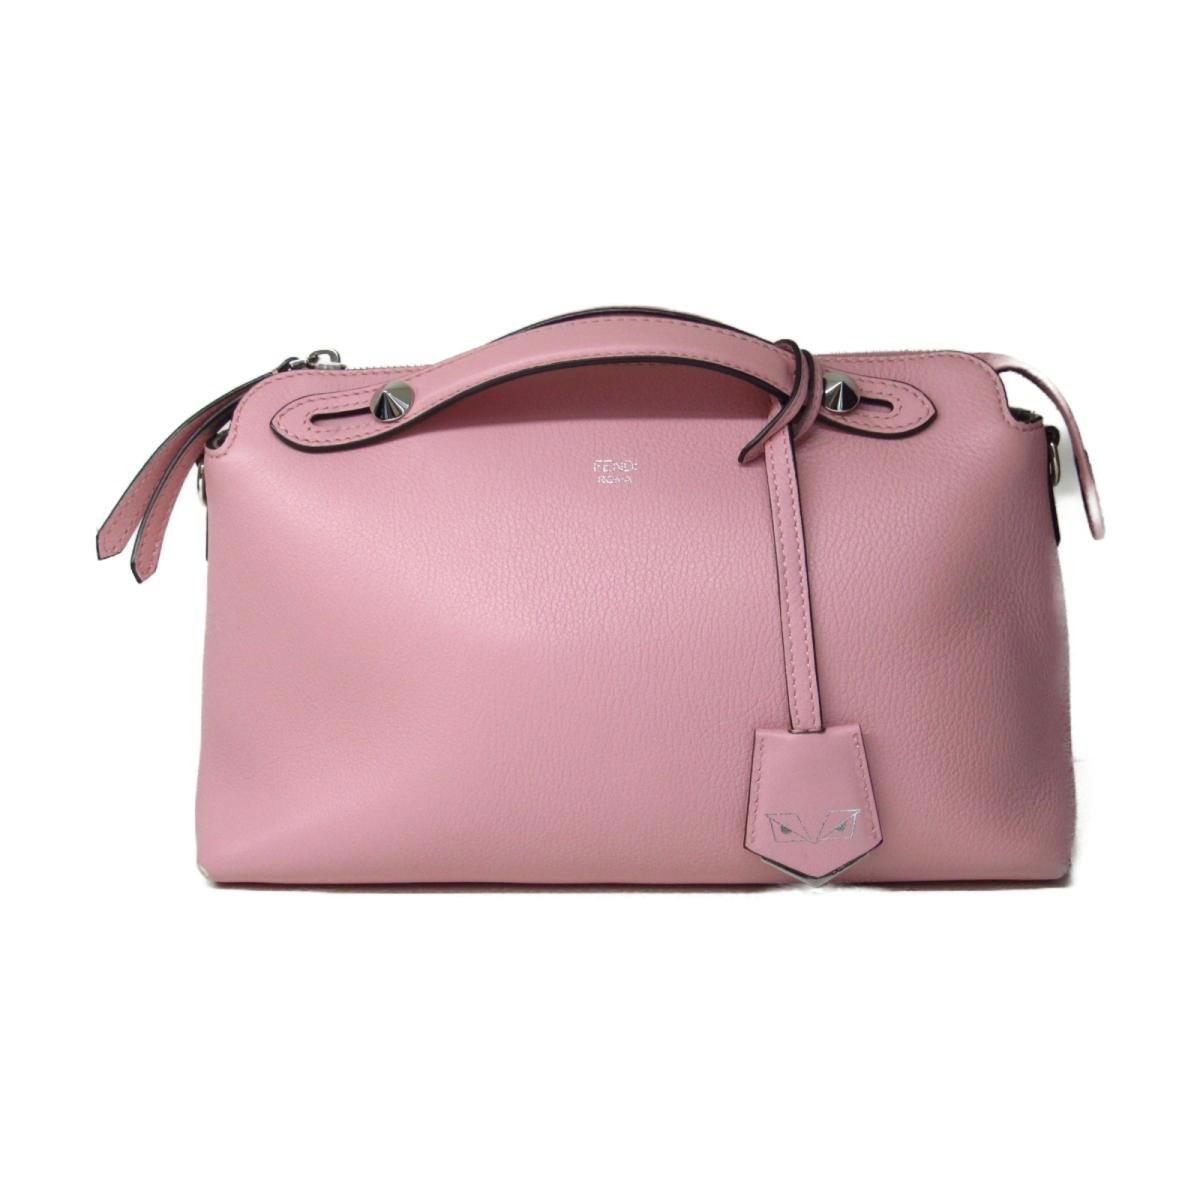 cfb195c6959a Lyst - Fendi By The Way Shoulder Hand Bag 8bl124 Leather Pink Used ...